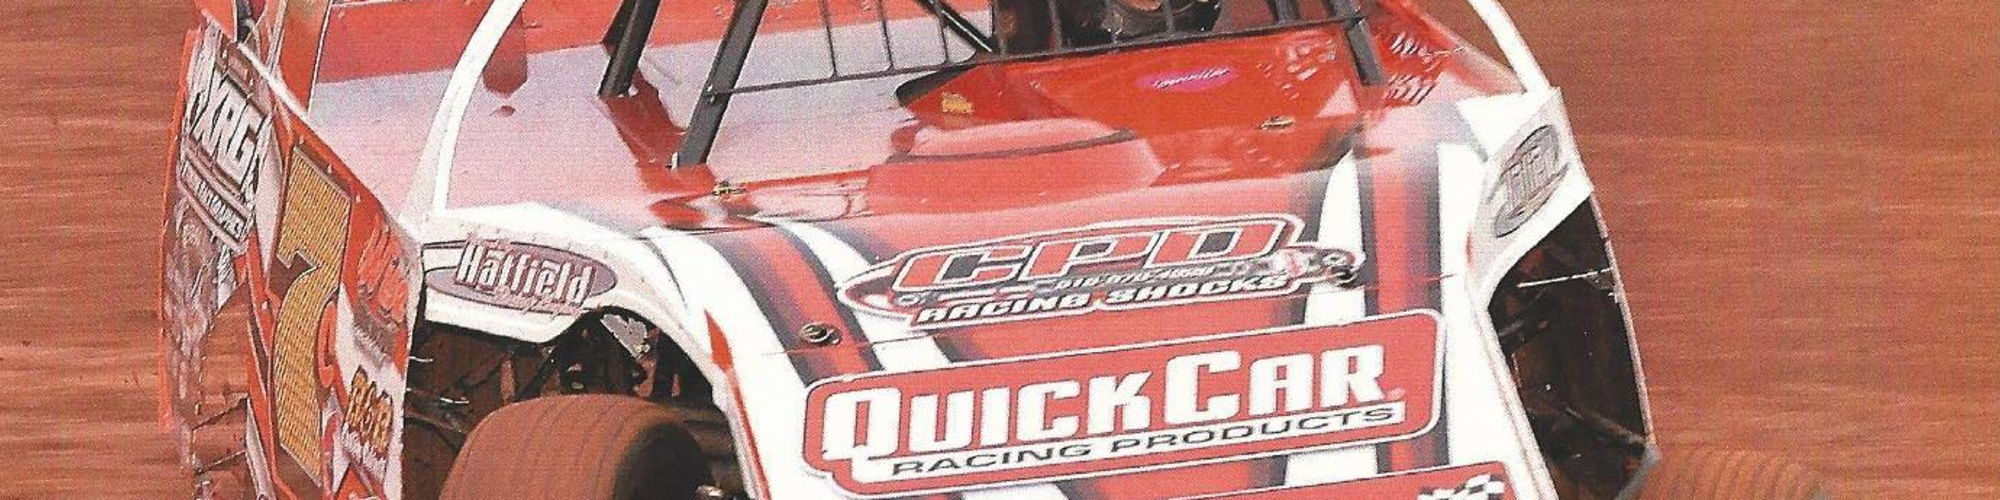 QuickCar Racing Products cover image